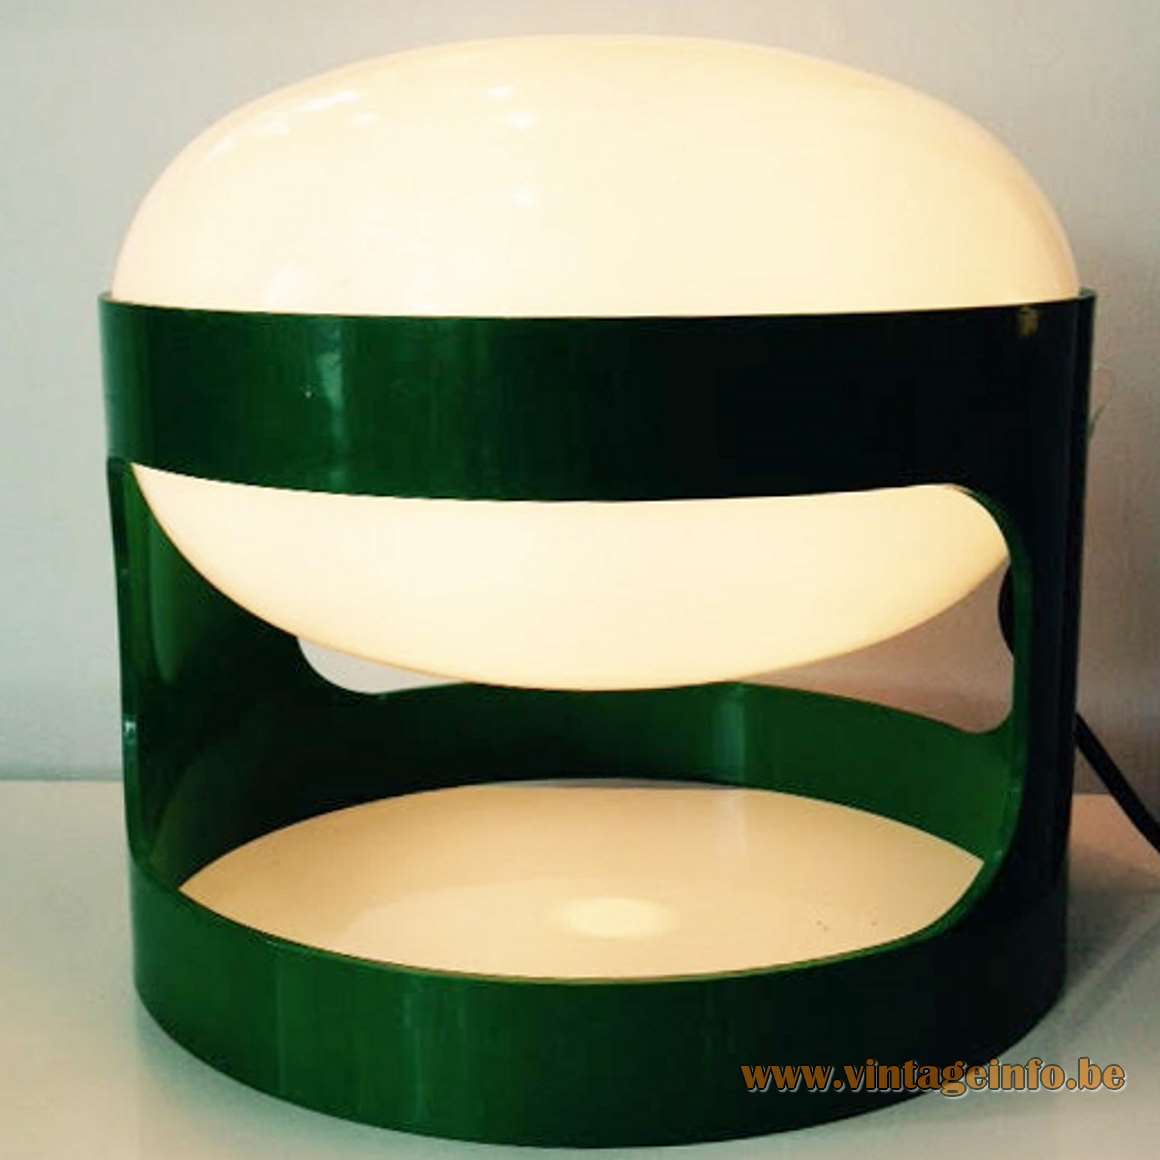 Joe Colombo KD27 Kartell Table Lamp - green